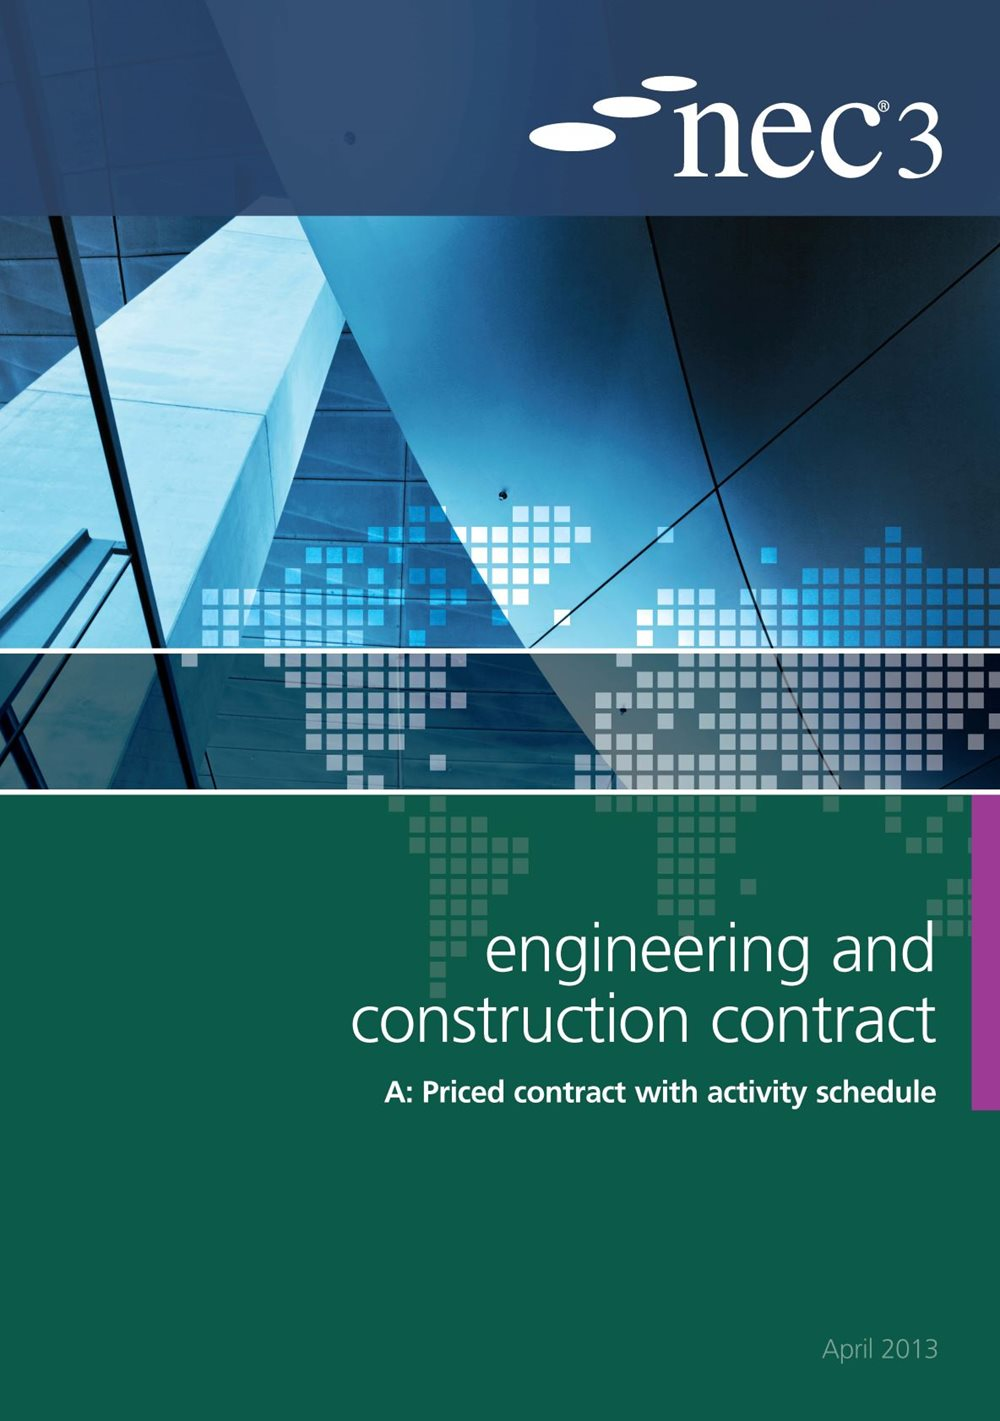 NEC3: Engineering and Construction Contract Option A priced contract with activity schedule